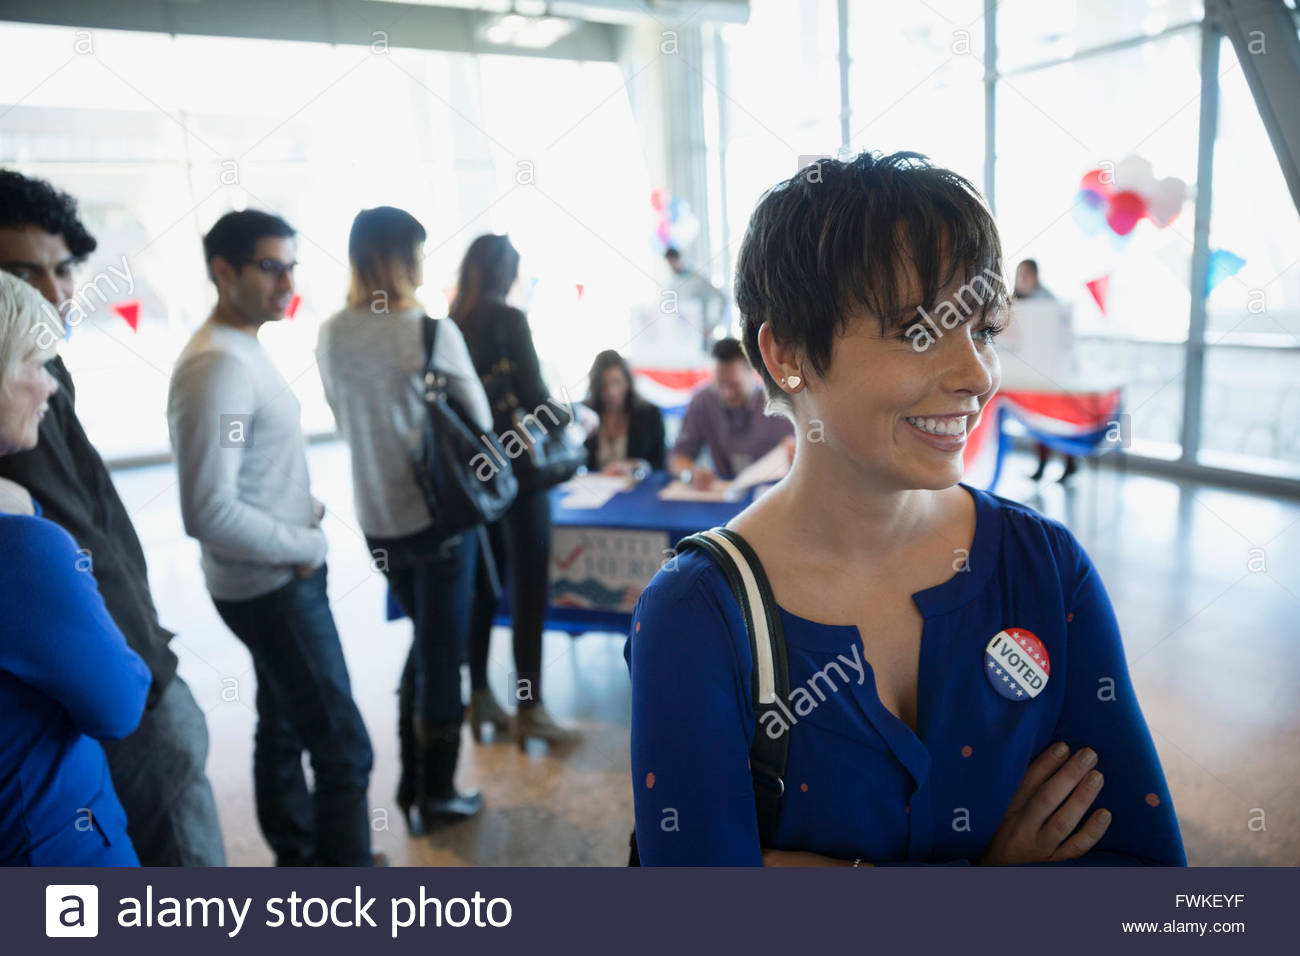 Smiling young woman at voter polling place - Stock Image